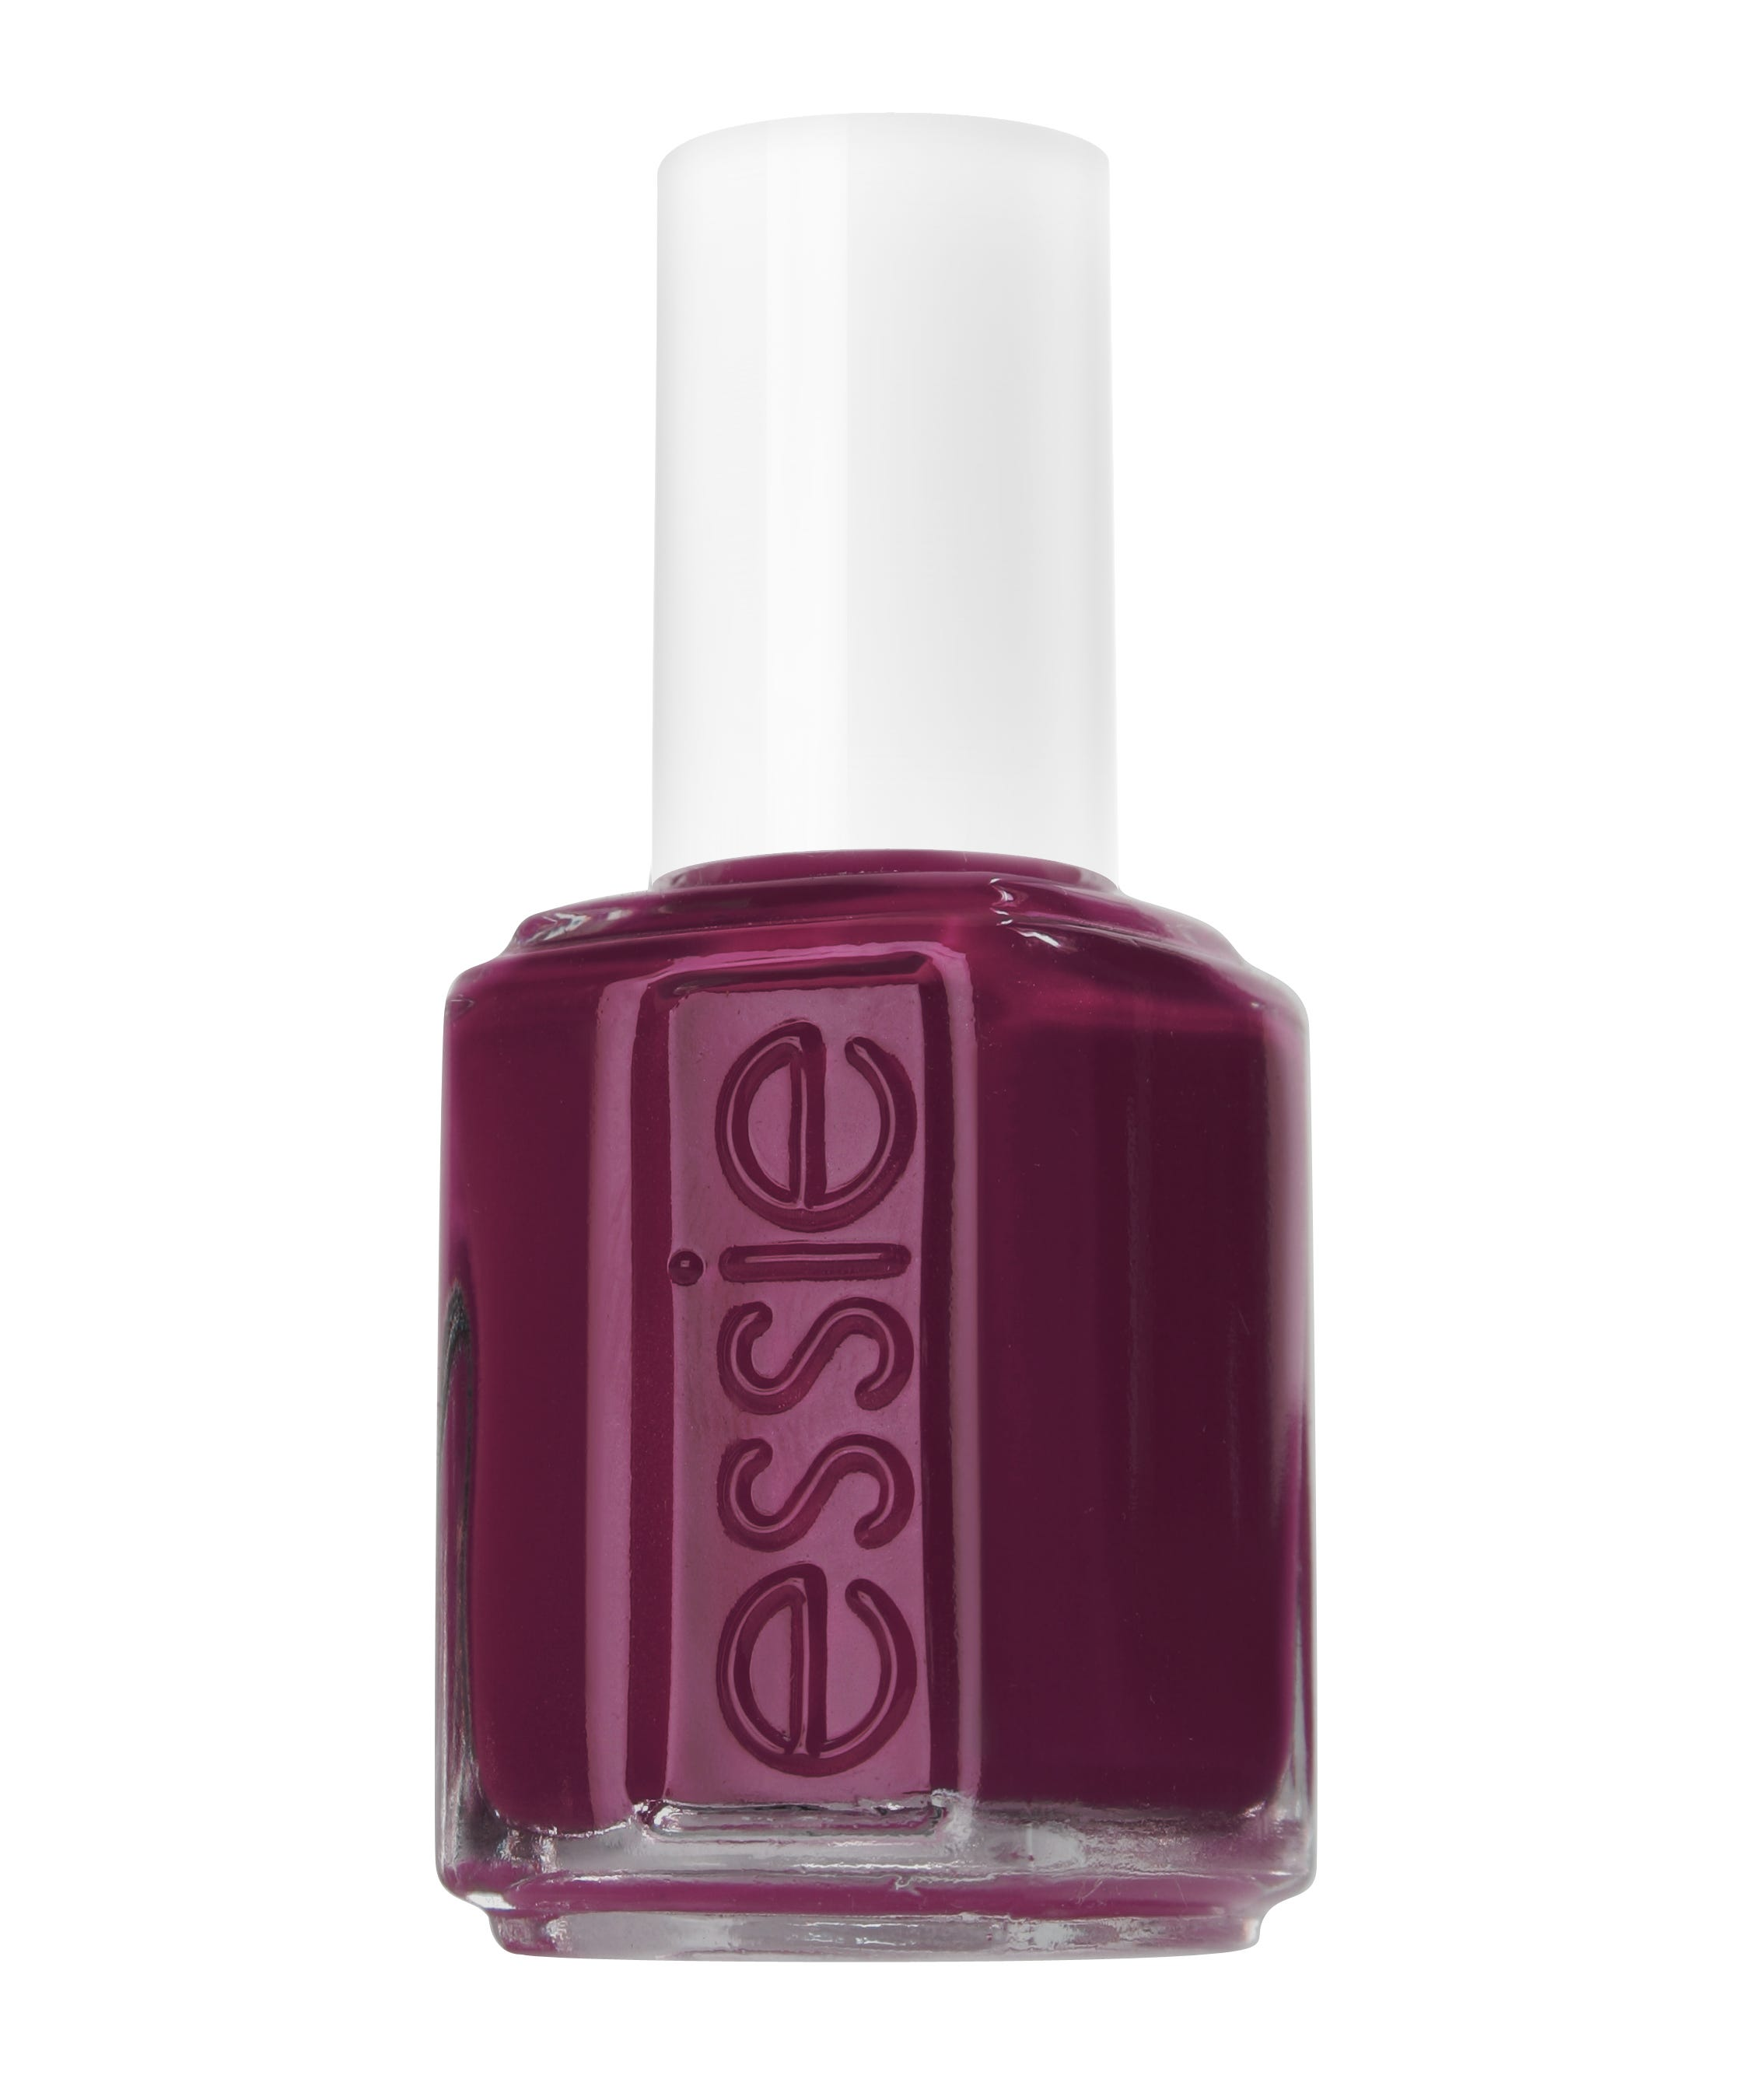 Essie Colors - Winter 2018 Nail Polish Shades